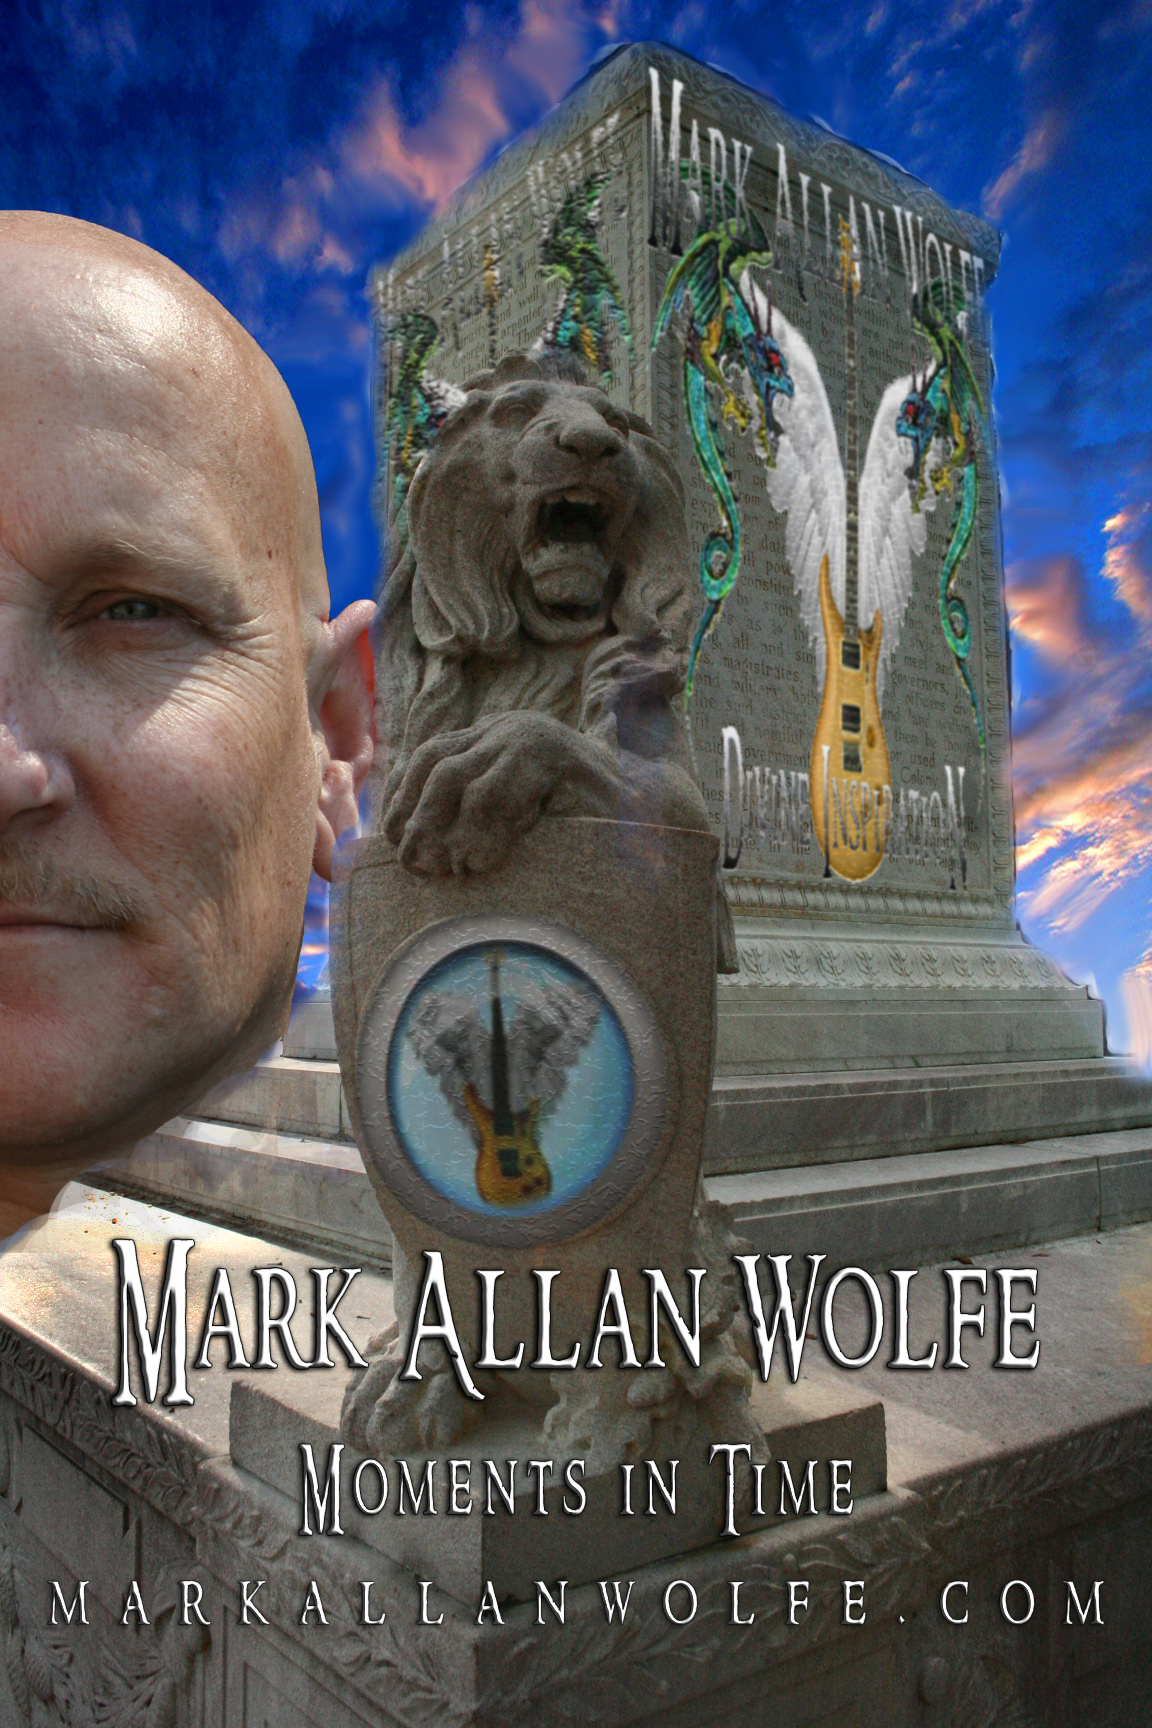 Moments in Time by Mark Allan Wolfe